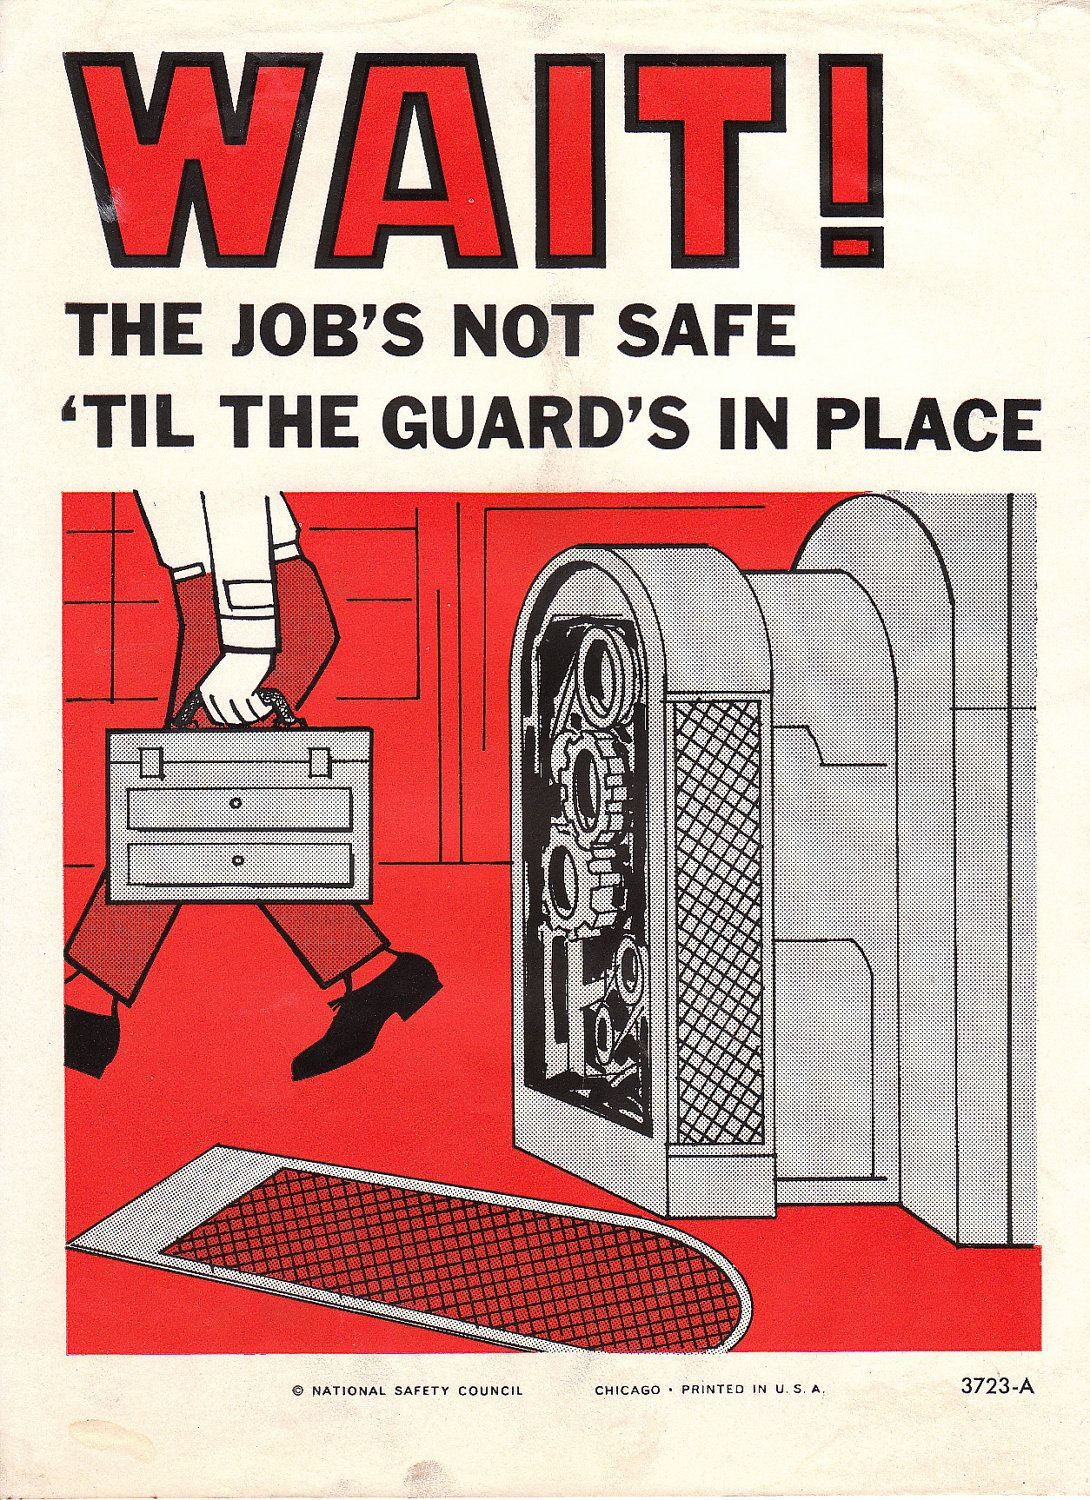 NSC Wait! National safety, Safety posters, Safety